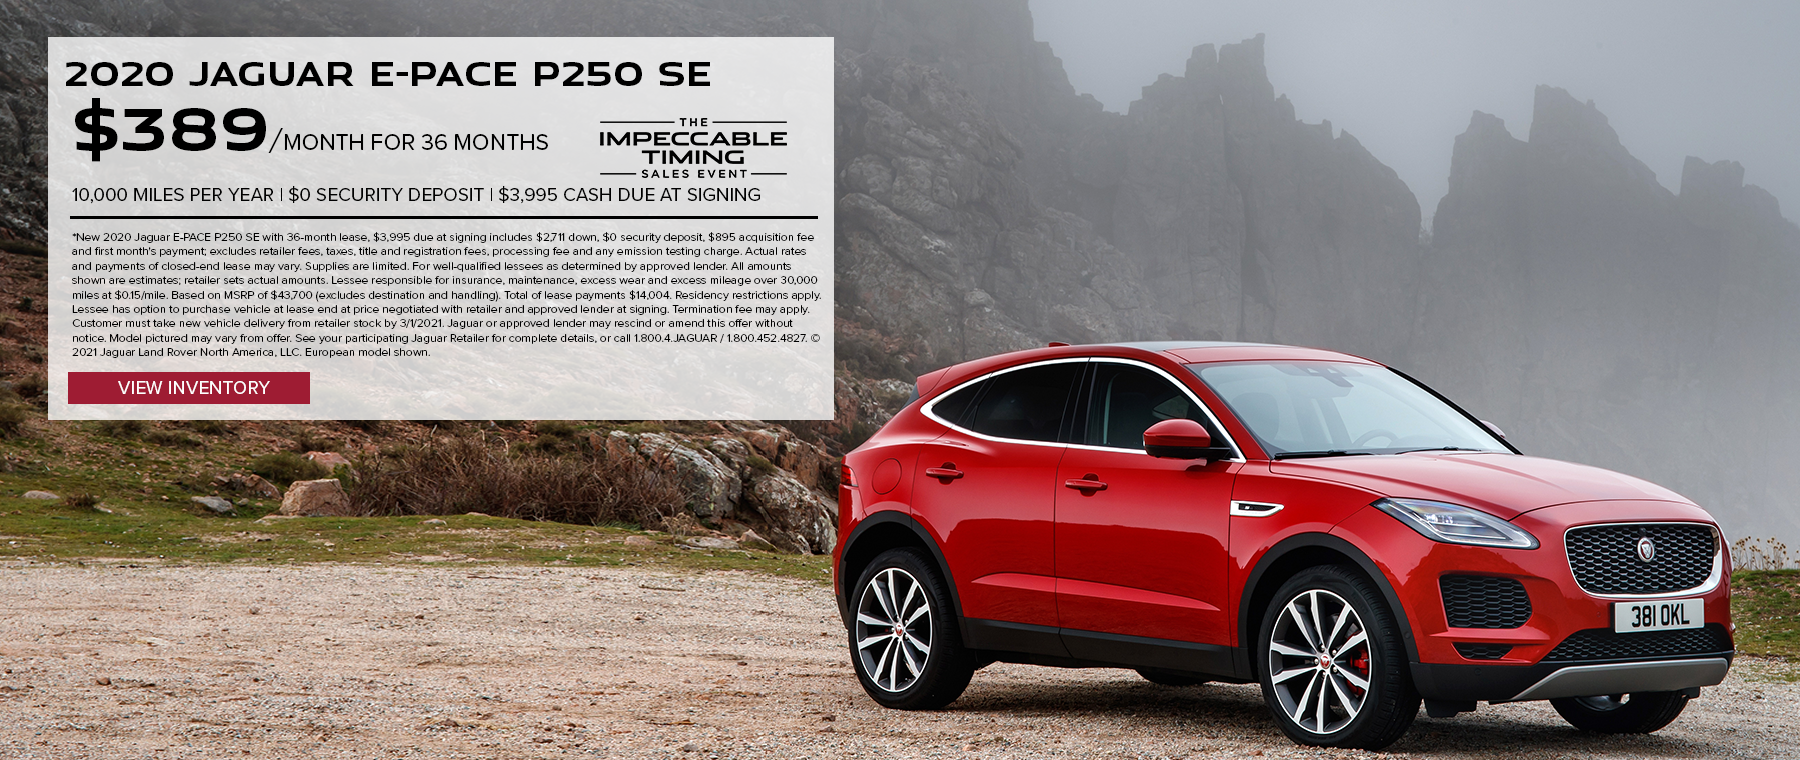 NEW 2020 JAGUAR E-PACE P250 SE. $389 PER MONTH. 36 MONTH LEASE TERM. $3,995 CASH DUE AT SIGNING. $0 SECURITY DEPOSIT. 10,000 MILES PER YEAR. EXCLUDES RETAILER FEES, TAXES, TITLE AND REGISTRATION FEES, PROCESSING FEE AND ANY EMISSION TESTING CHARGE. OFFER ENDS 3/1/2021.